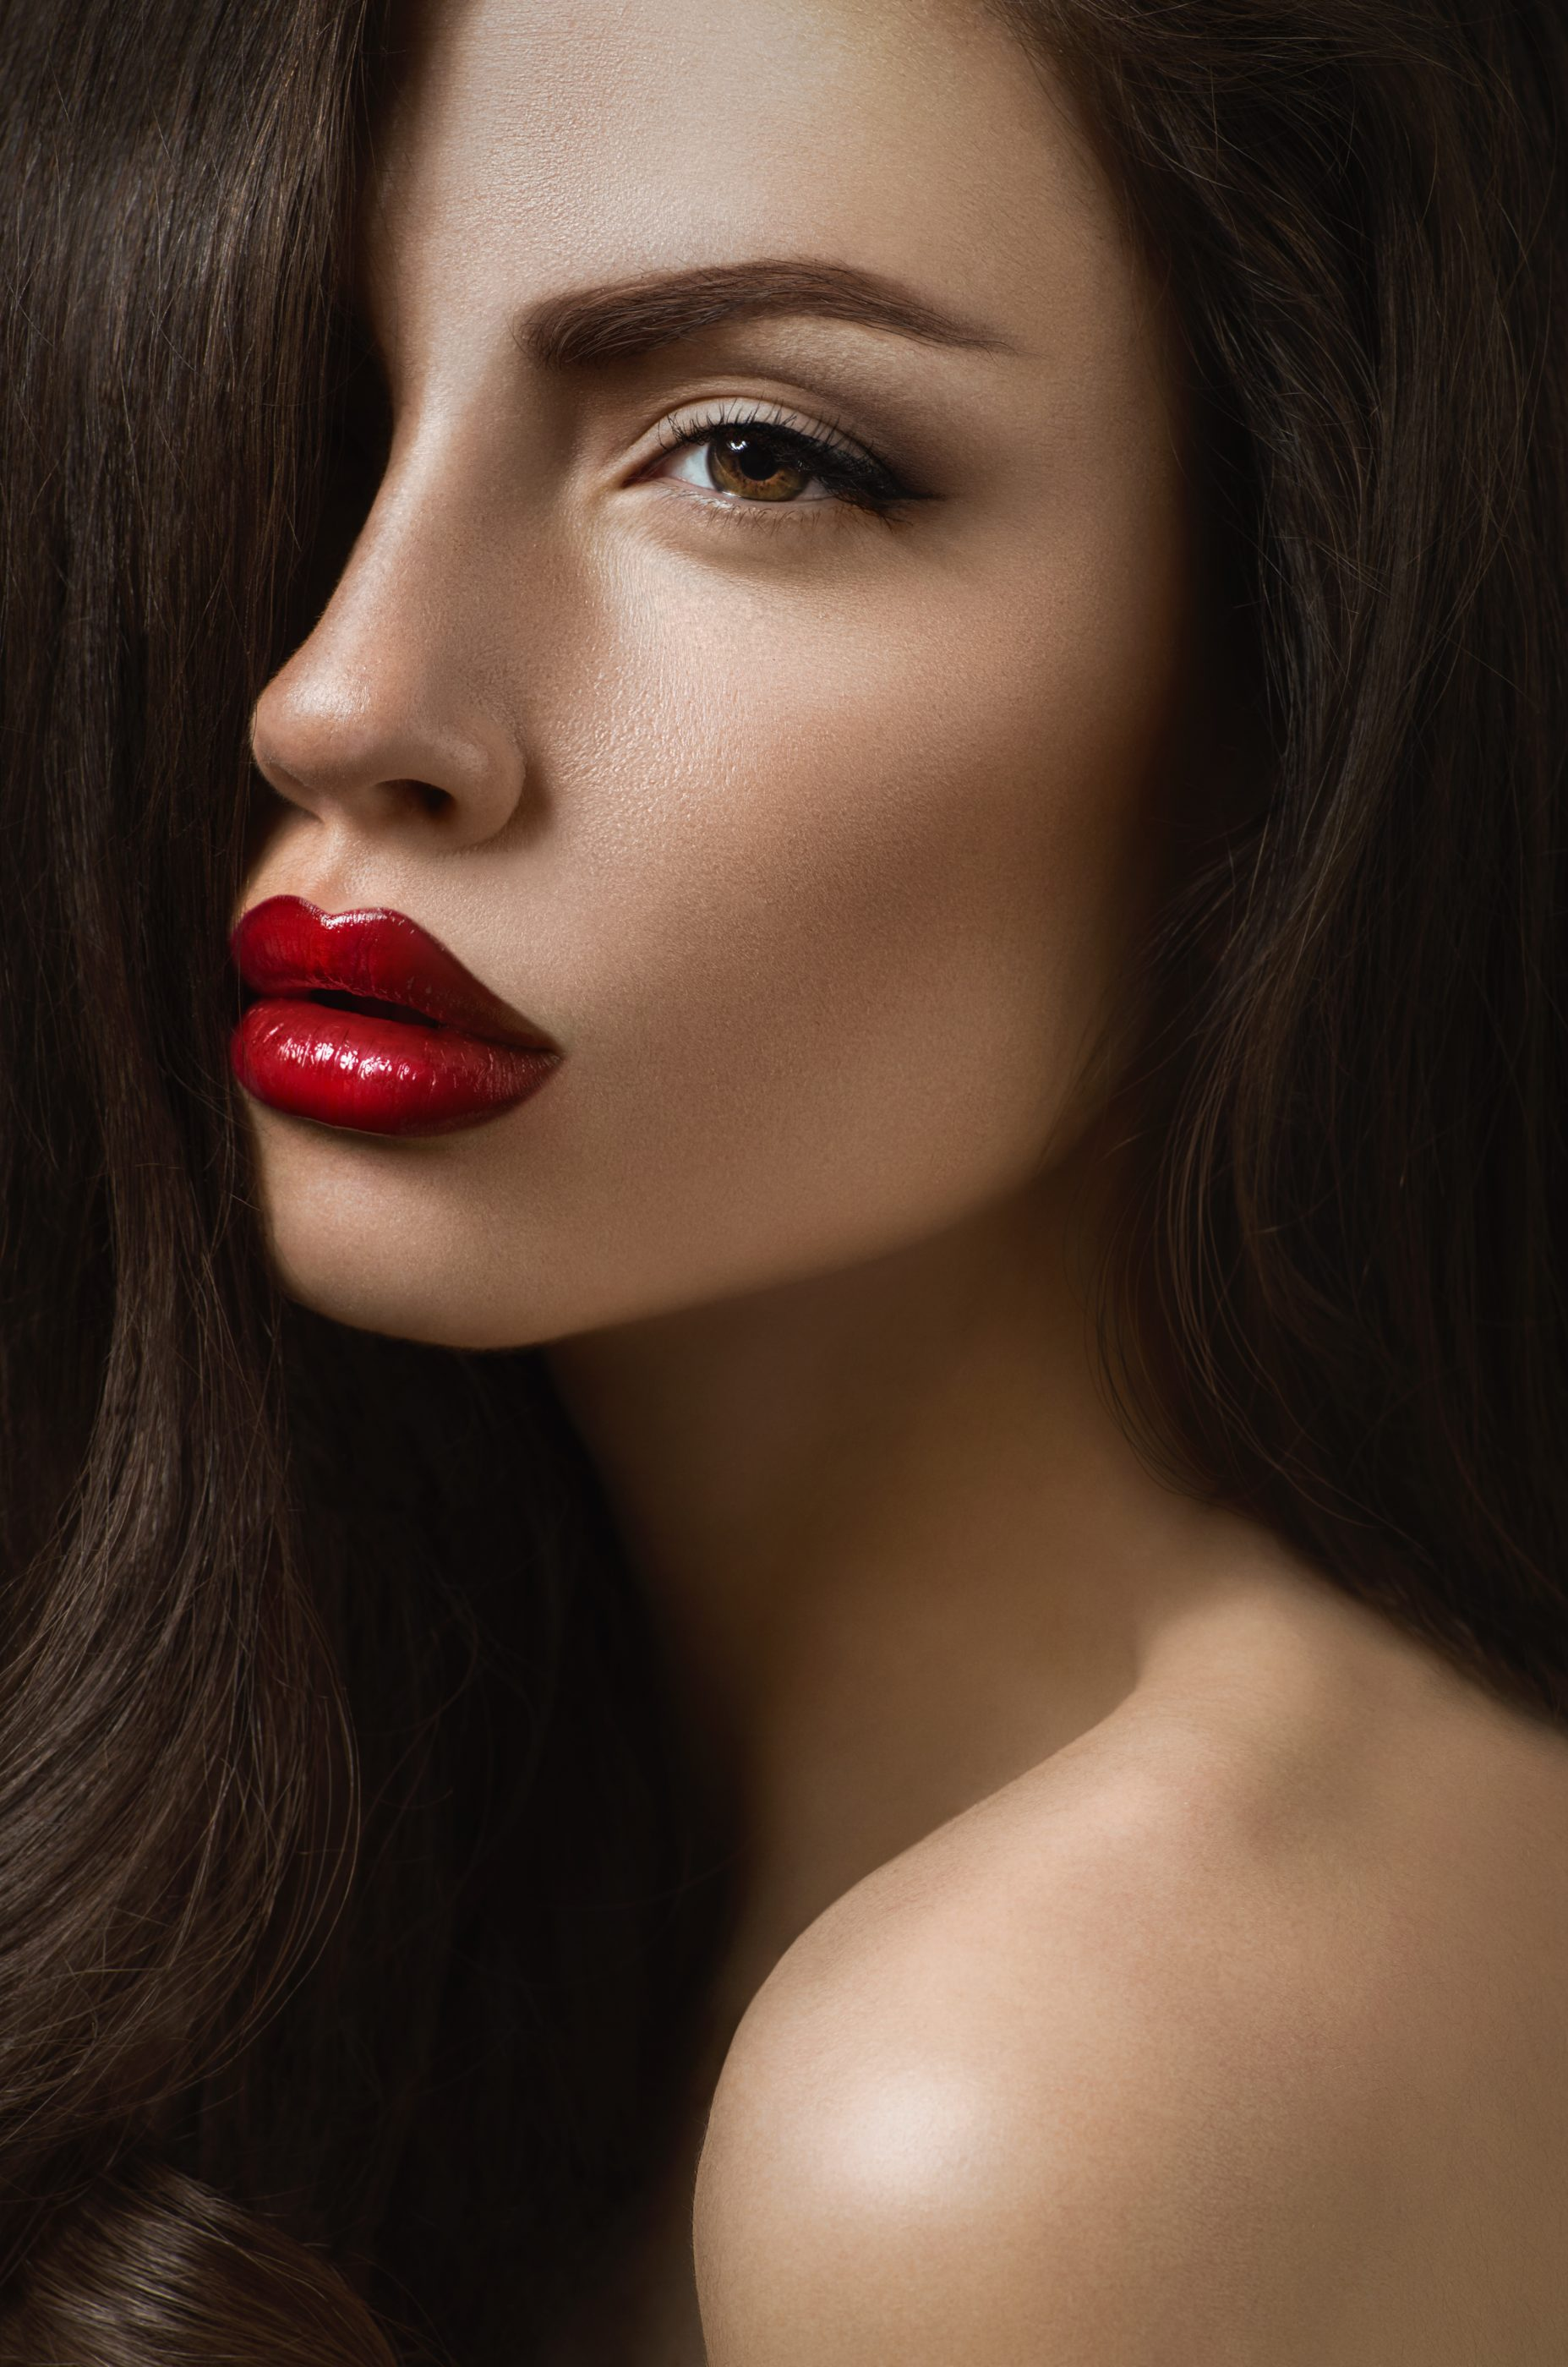 Posh brunette woman with sexy red lips and perfect pure skin